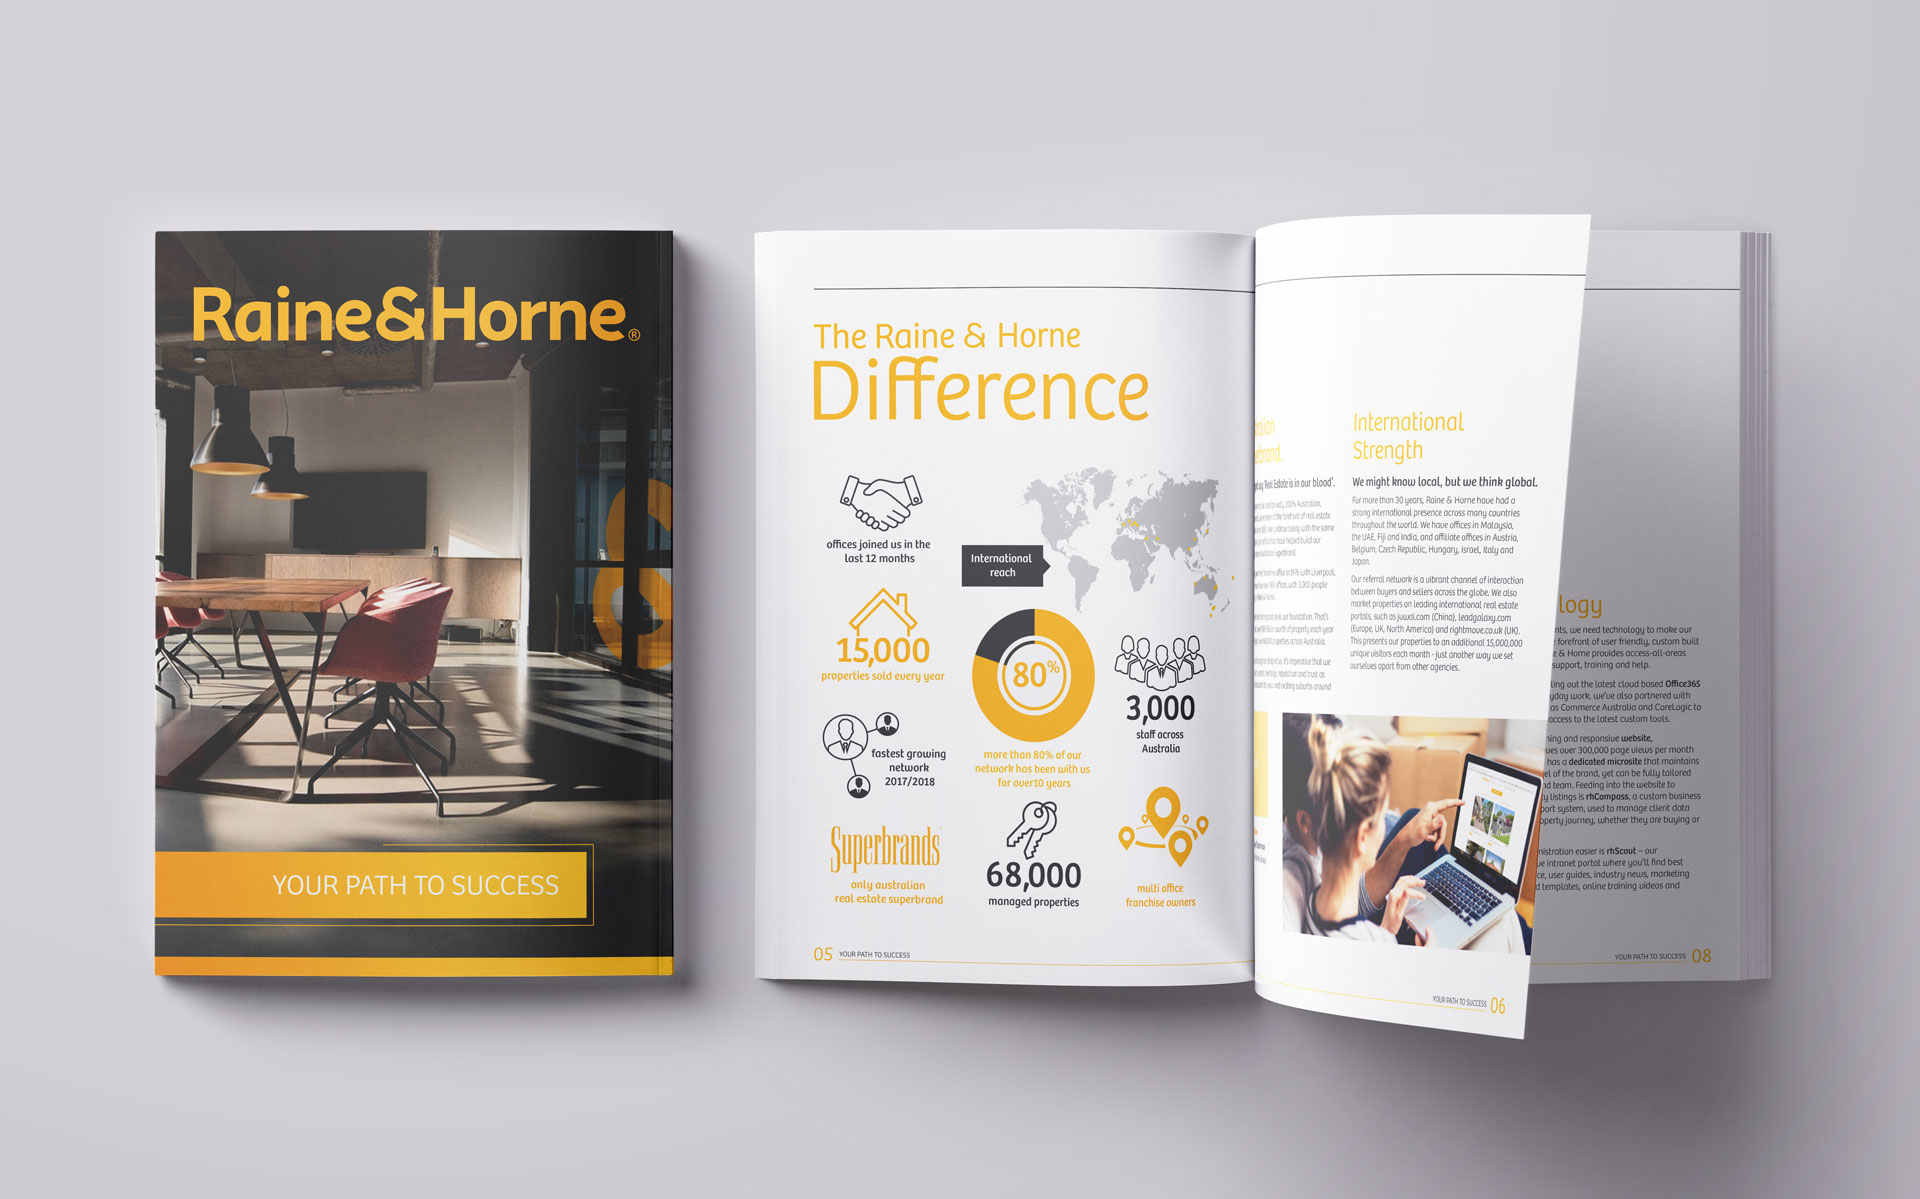 Raine & Horne marketing, advertising & publication design by Amy at Yellow Sunday